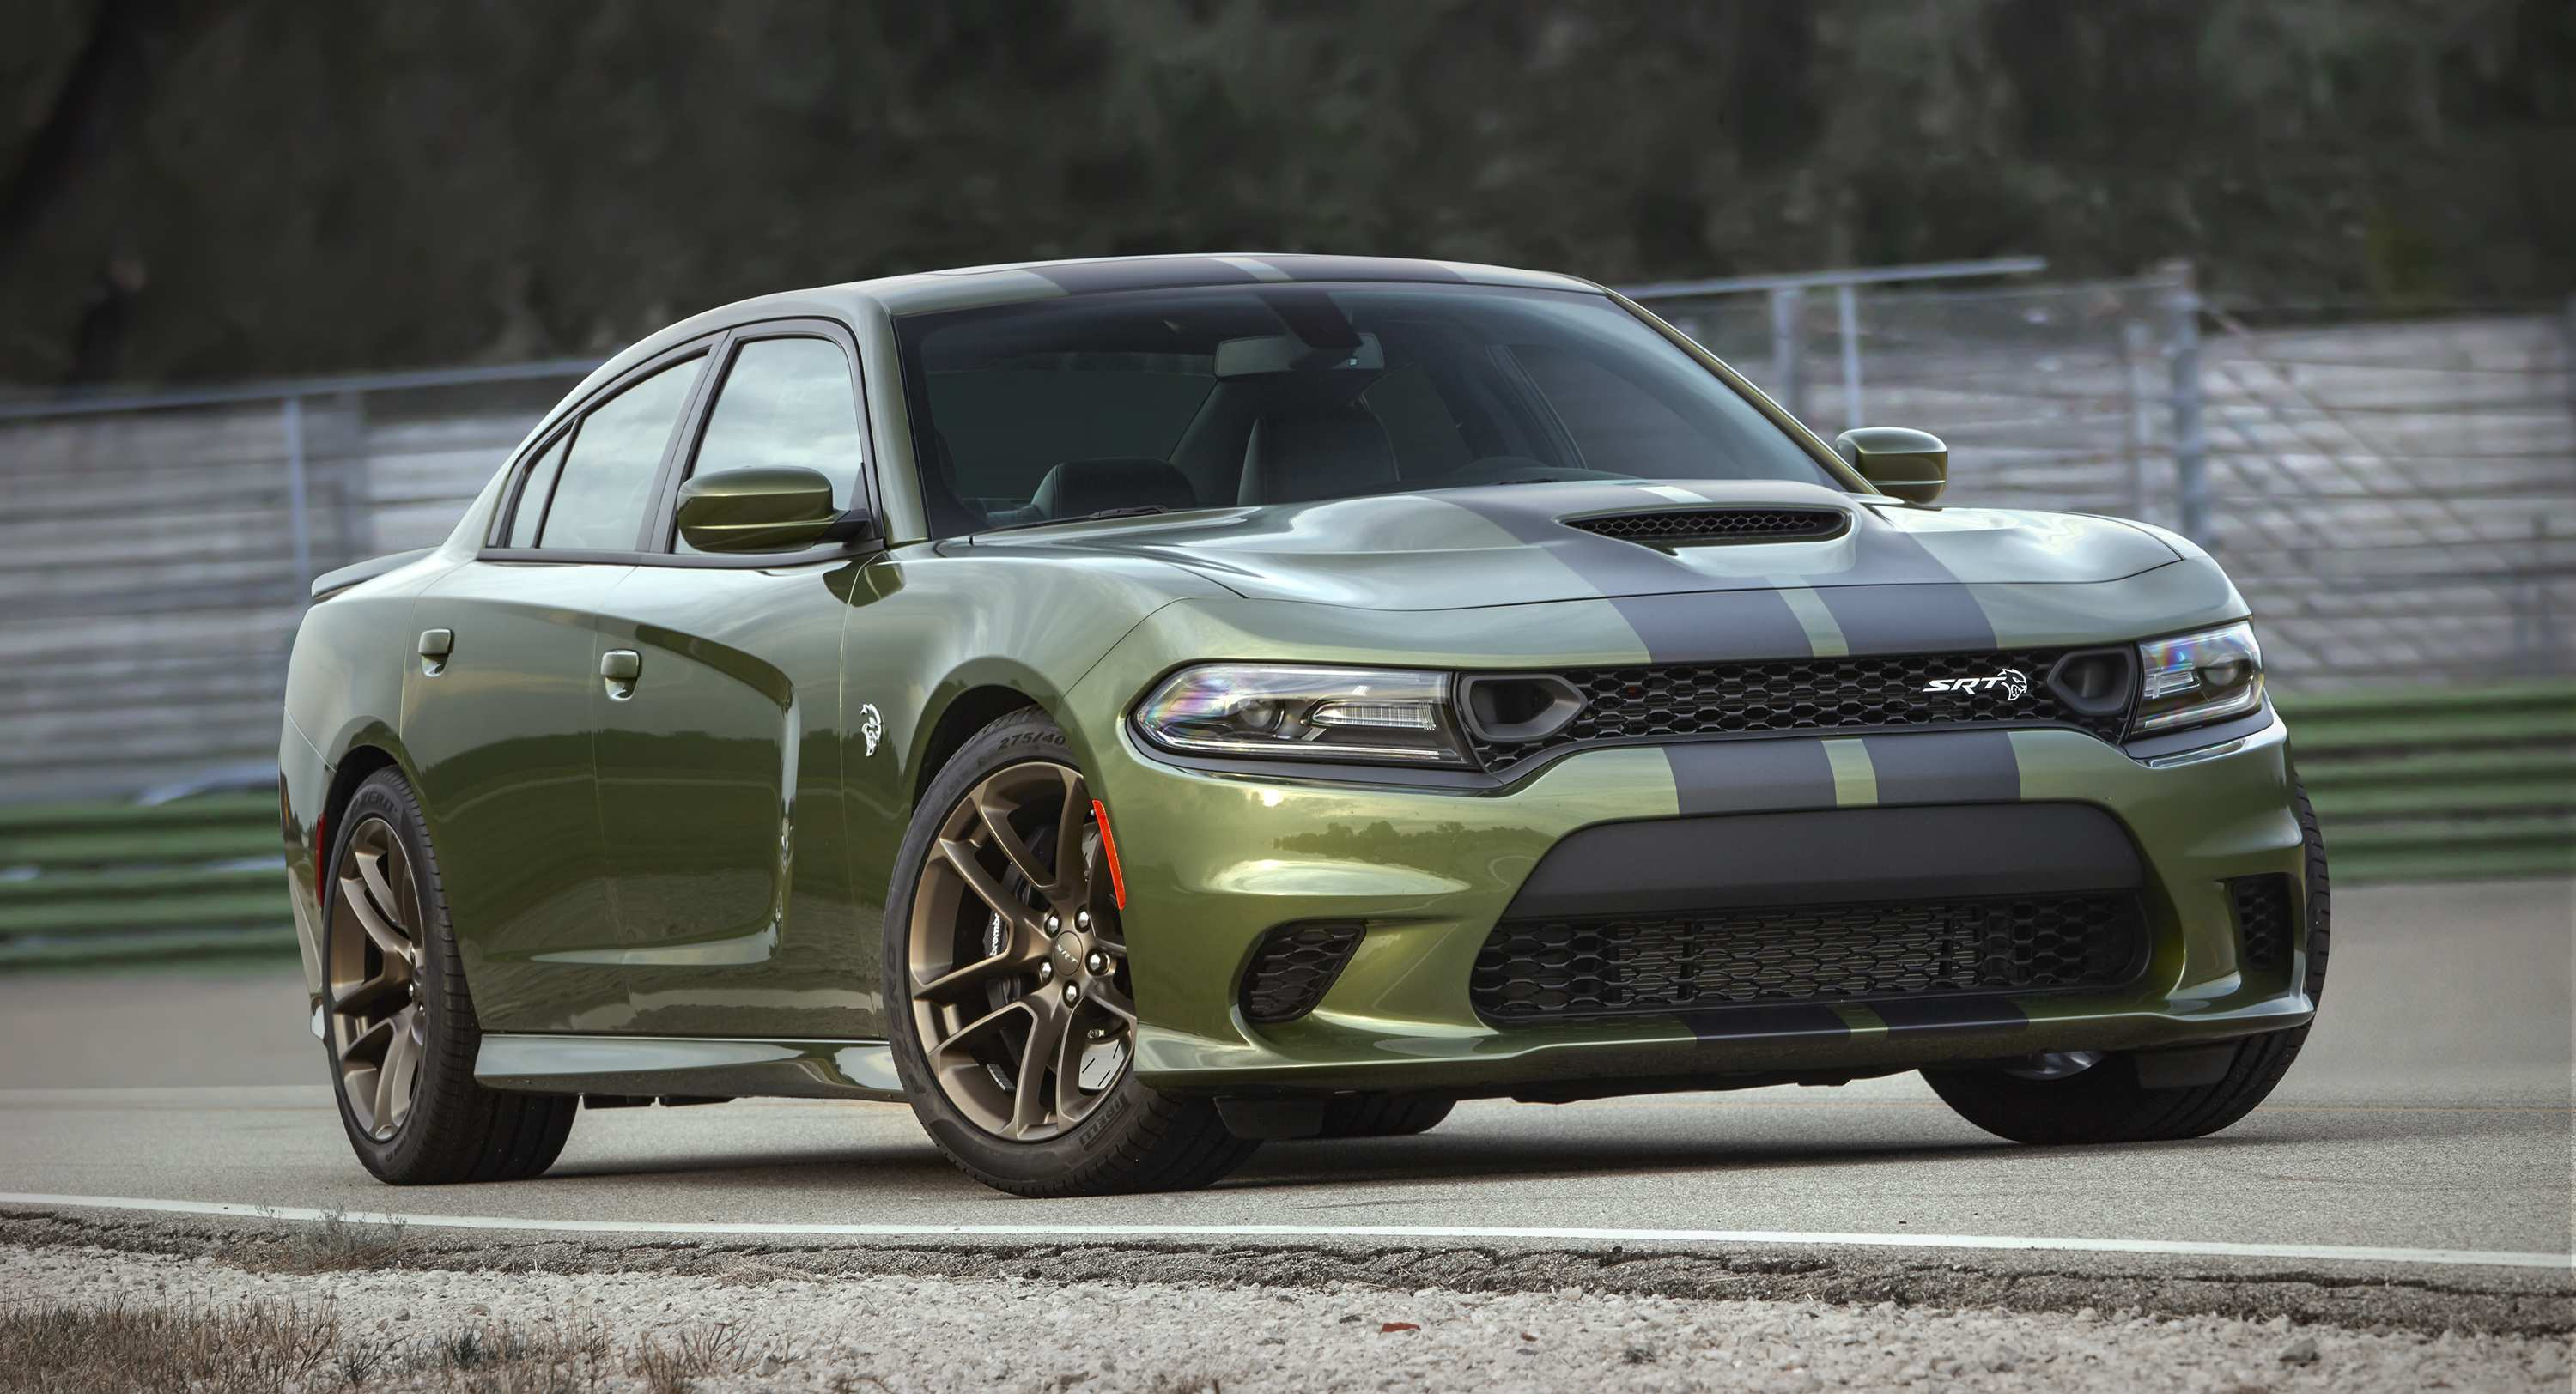 51 New 2020 Dodge Charger SRT8 Research New